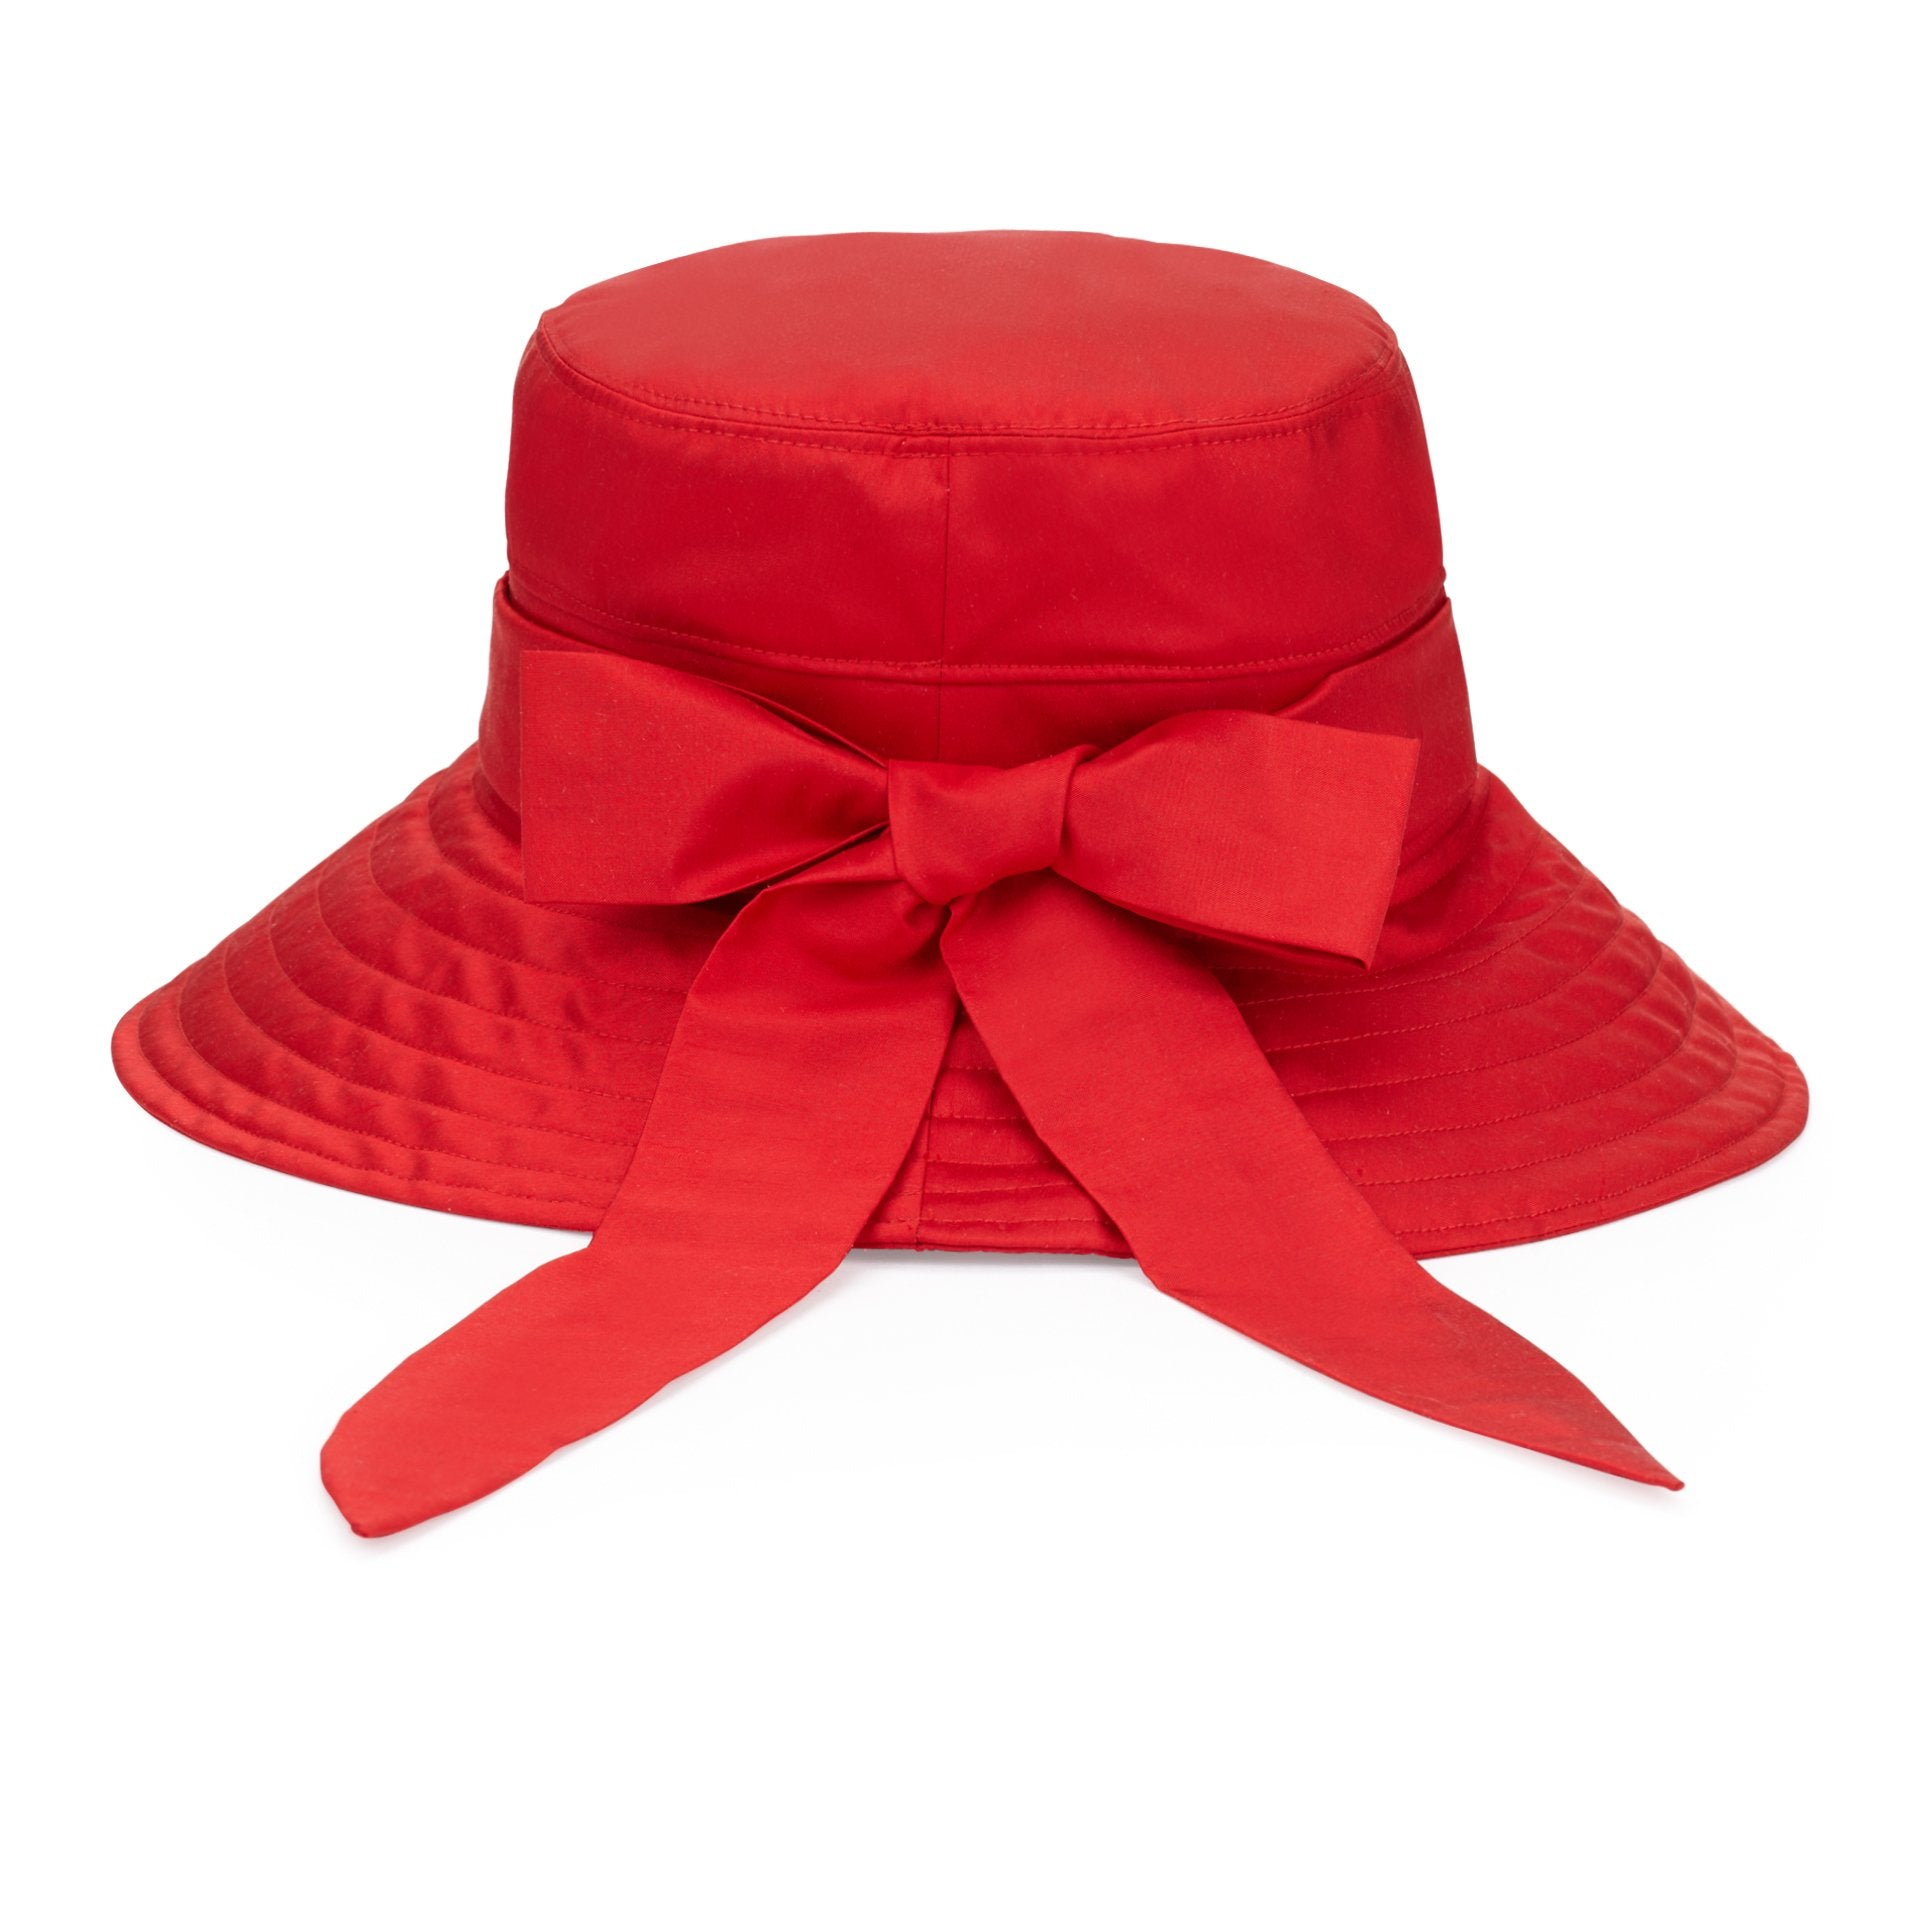 Brigitte silk sun hat - Women's hats - Lock & Co. Hatters London UK